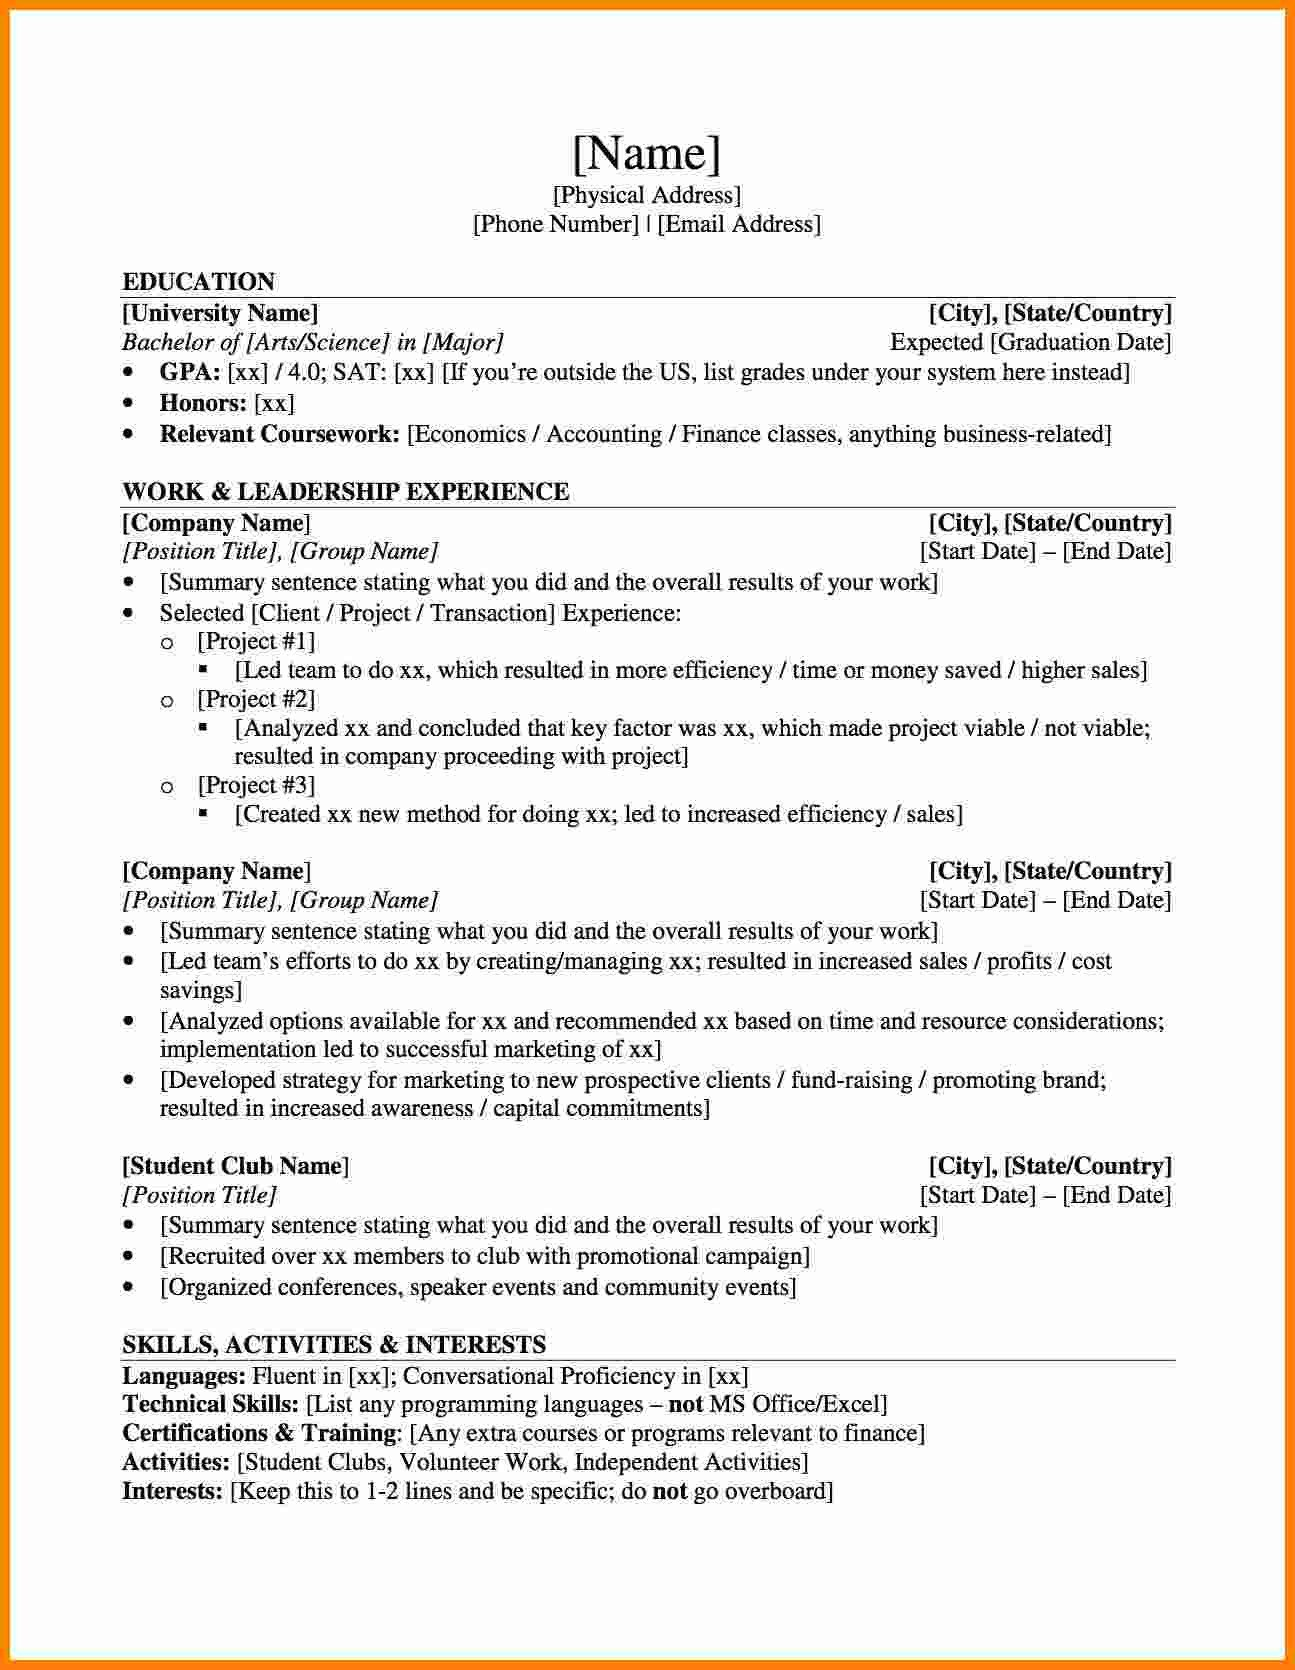 Curriculum Vitae Template Student 10 Cv Sample Graduate School